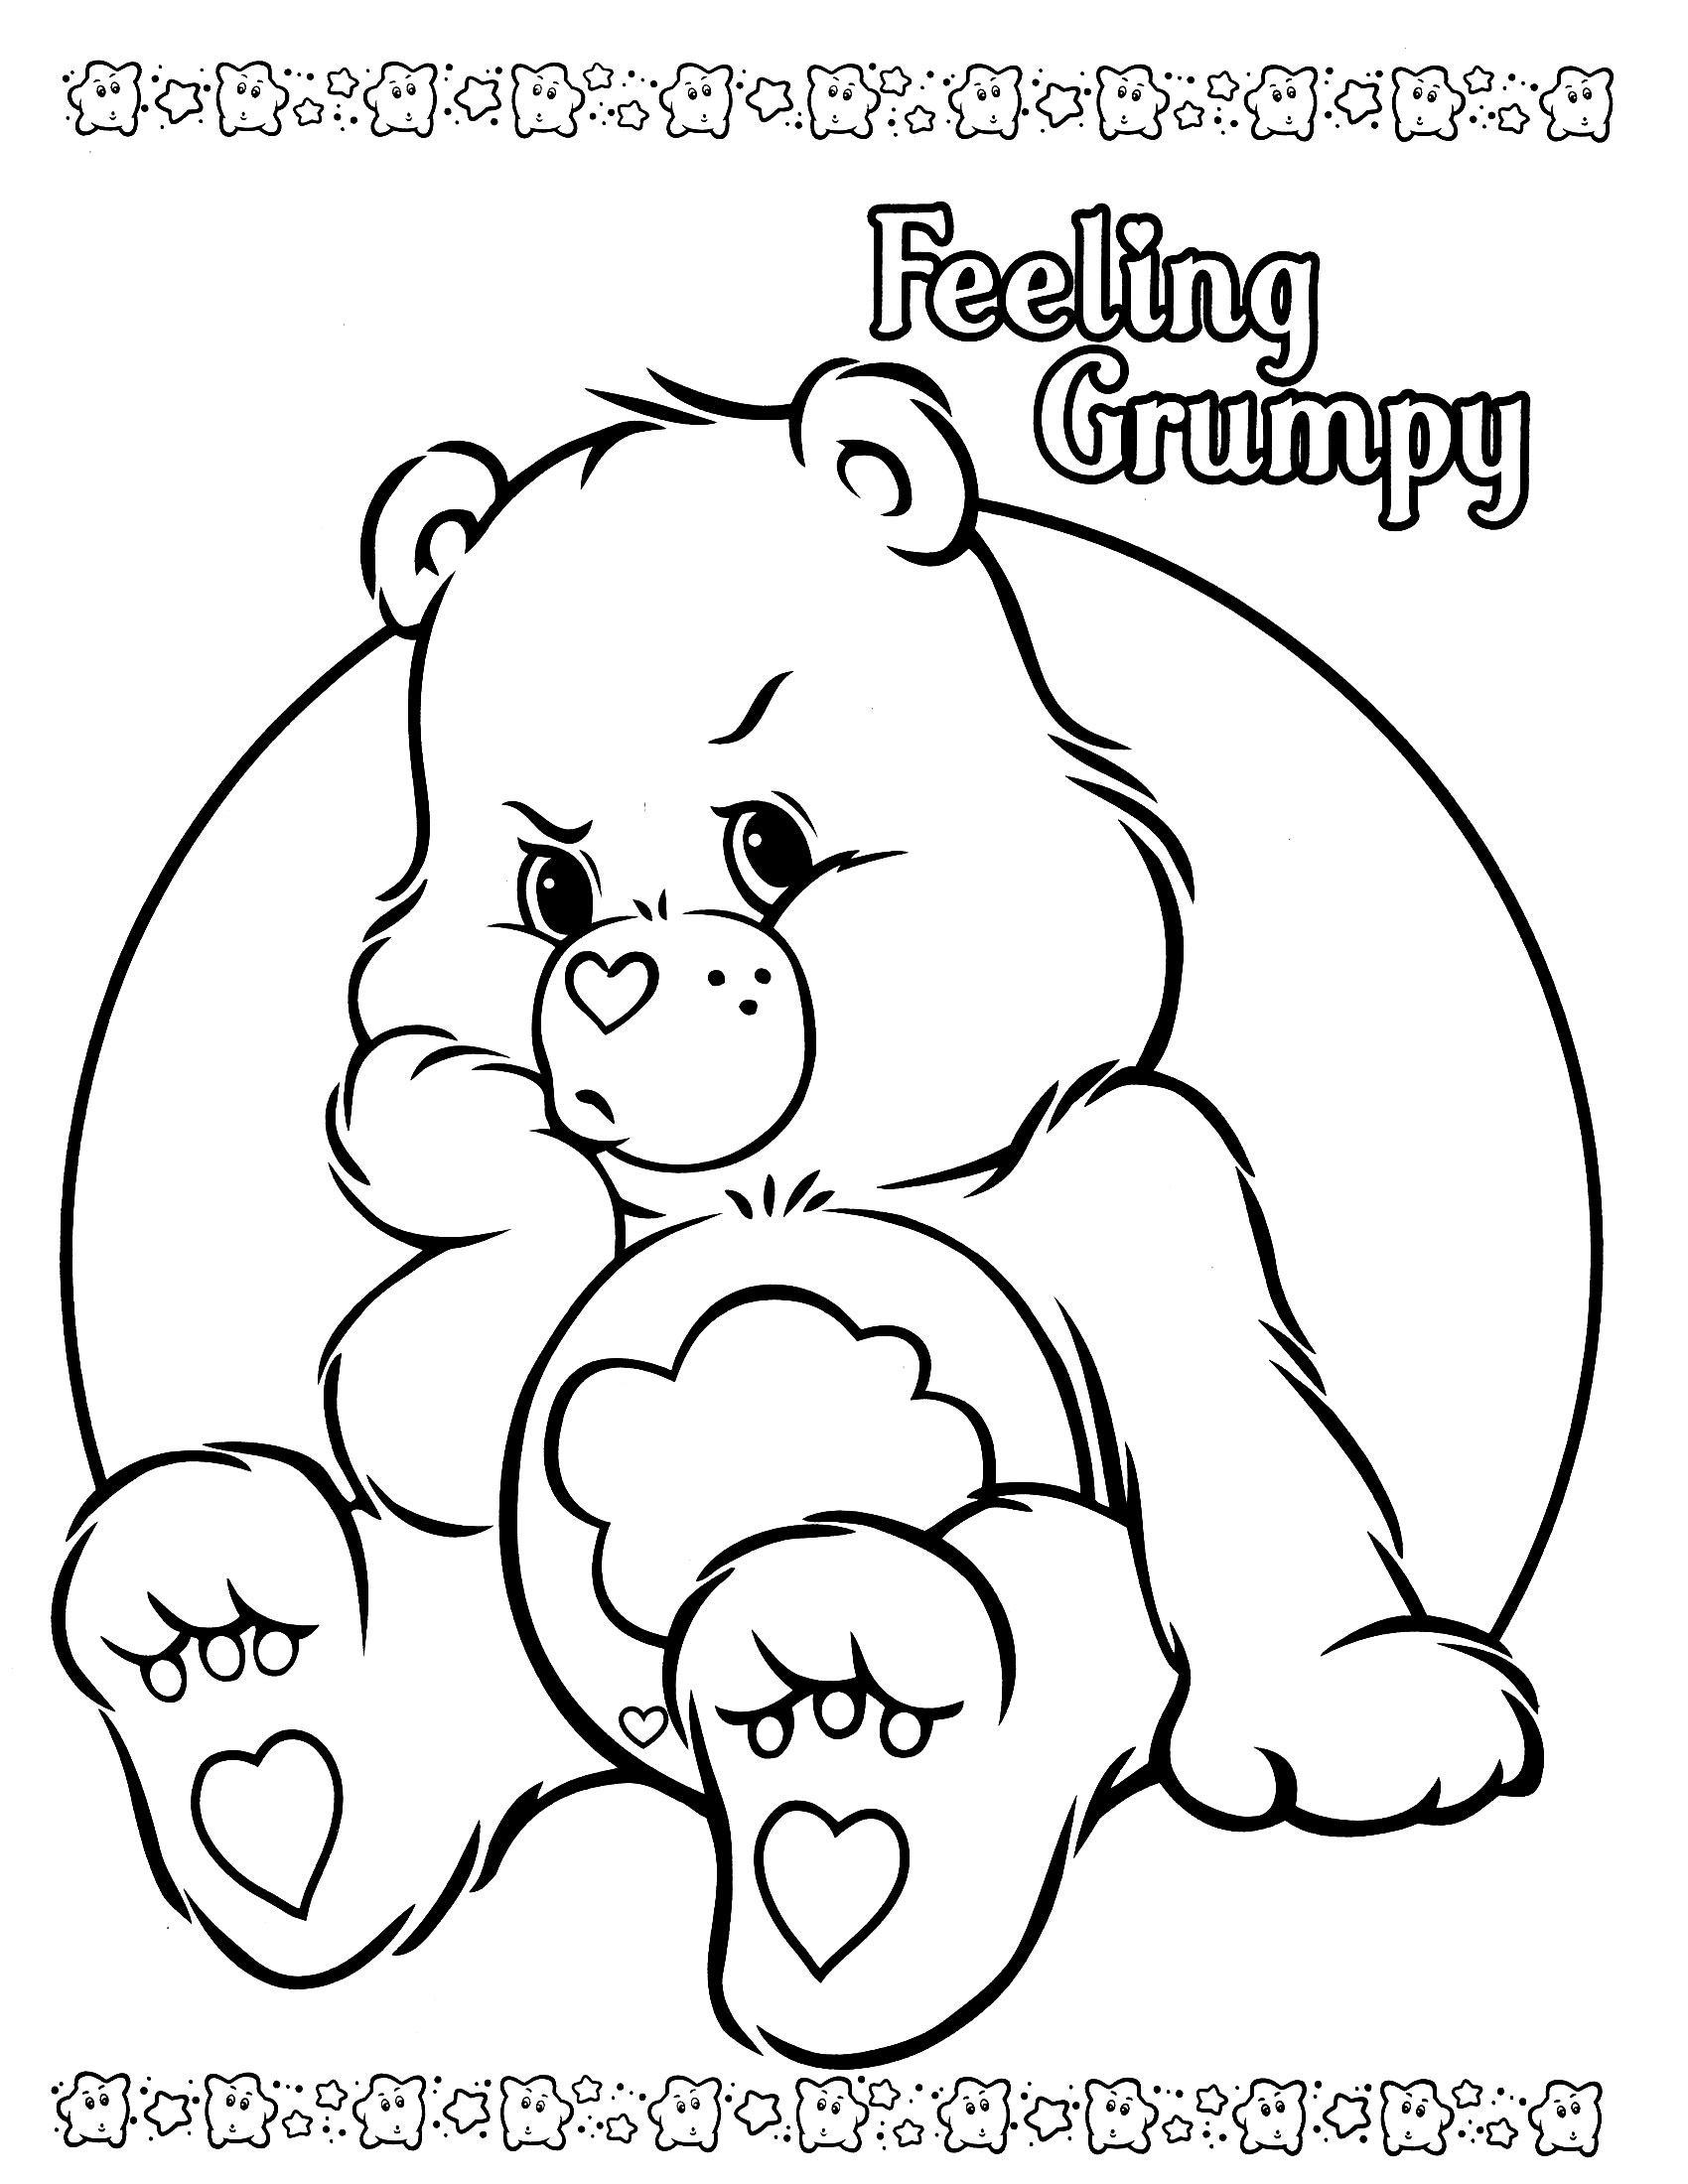 coloring pages of bears to print care bear coloring pages to download and print for free bears pages to coloring of print 1 1